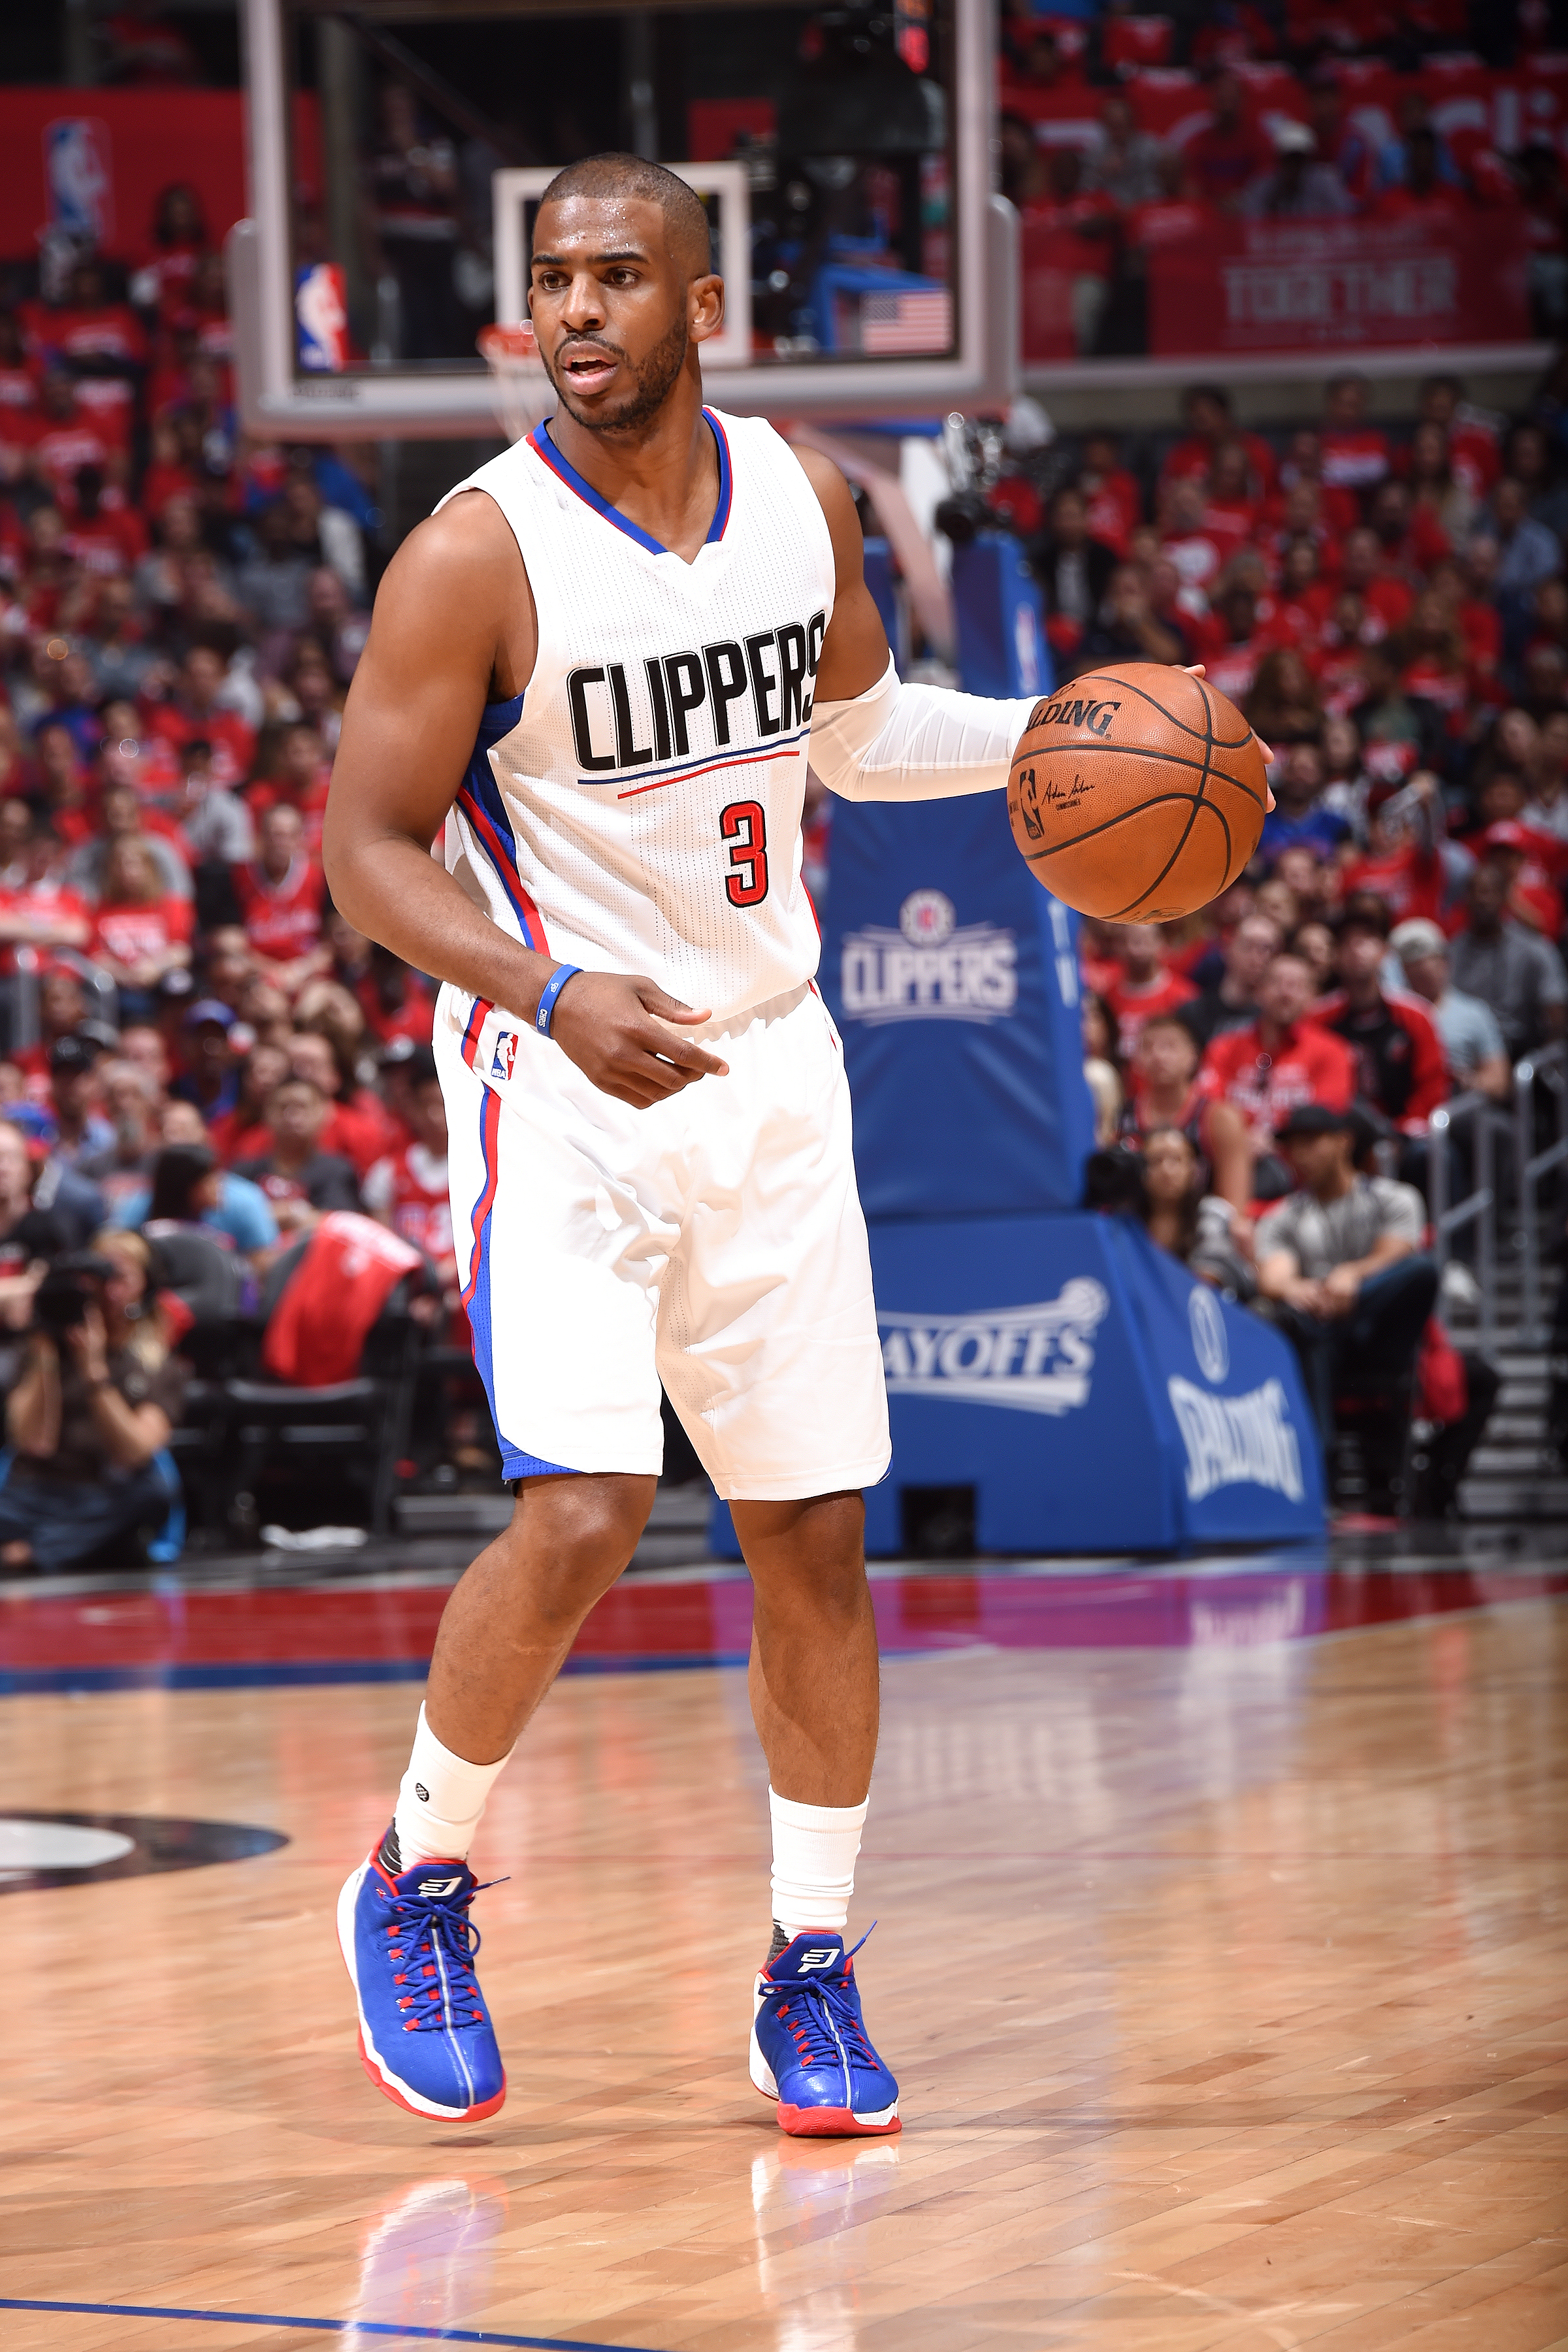 LOS ANGELES, CA - APRIL 20: Chris Paul #3 of the Los Angeles Clippers handles the ball during the game against the Portland Trail Blazers in Game Two of the Western Conference Quarterfinals during the 2016 NBA Playoffs on April 20, 2016 at STAPLES Center